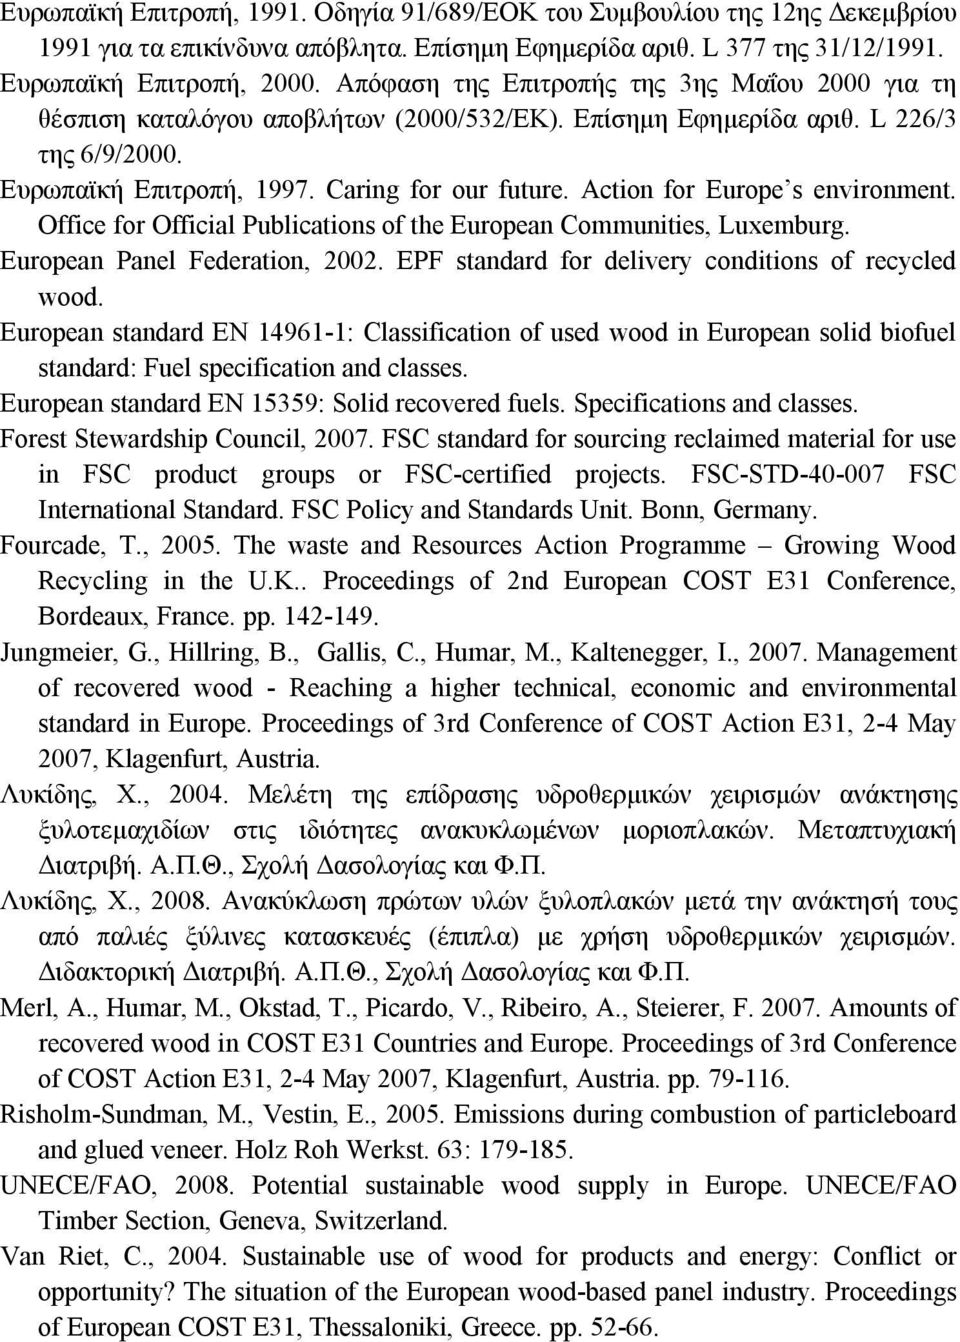 Action for Europe s environment. Office for Official Publications of the European Communities, Luxemburg. European Panel Federation, 2002. EPF standard for delivery conditions of recycled wood.